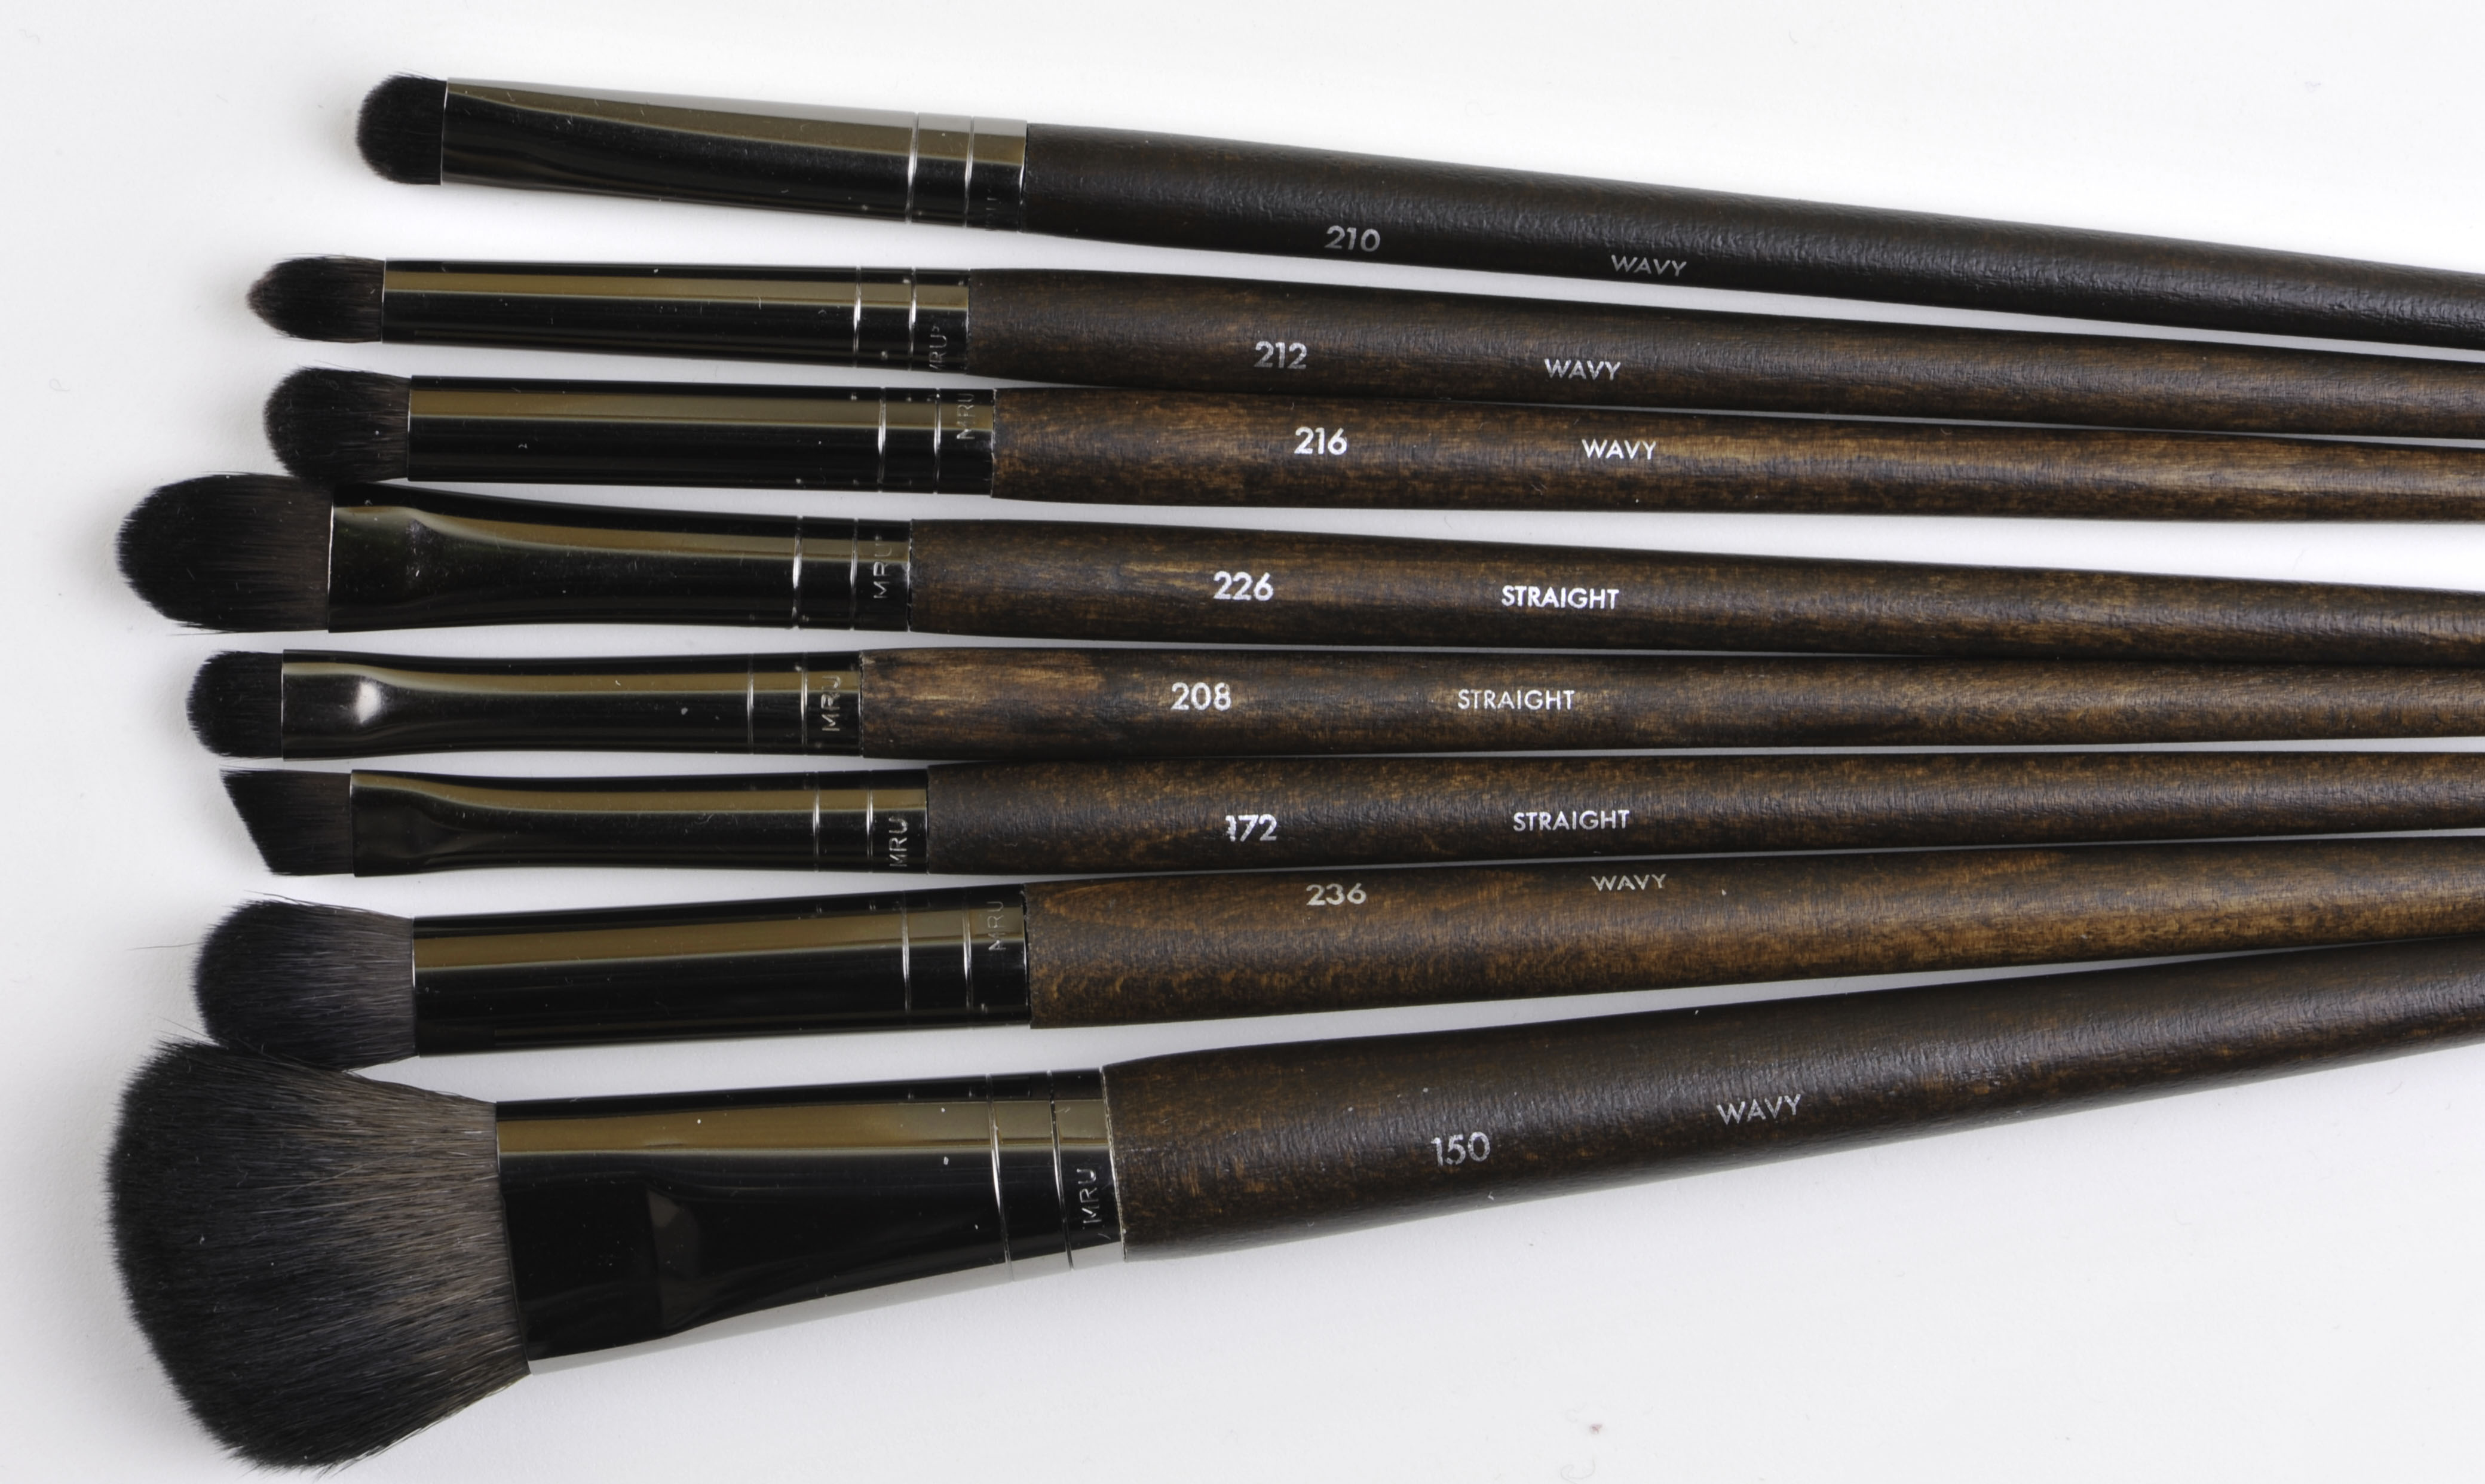 3f93fc6ed52 Compared to the Kokutan from Hakuhodo it's not the same category, I find  Hakuhodo more finished but I am not unhappy with the quality of these Make  up for ...